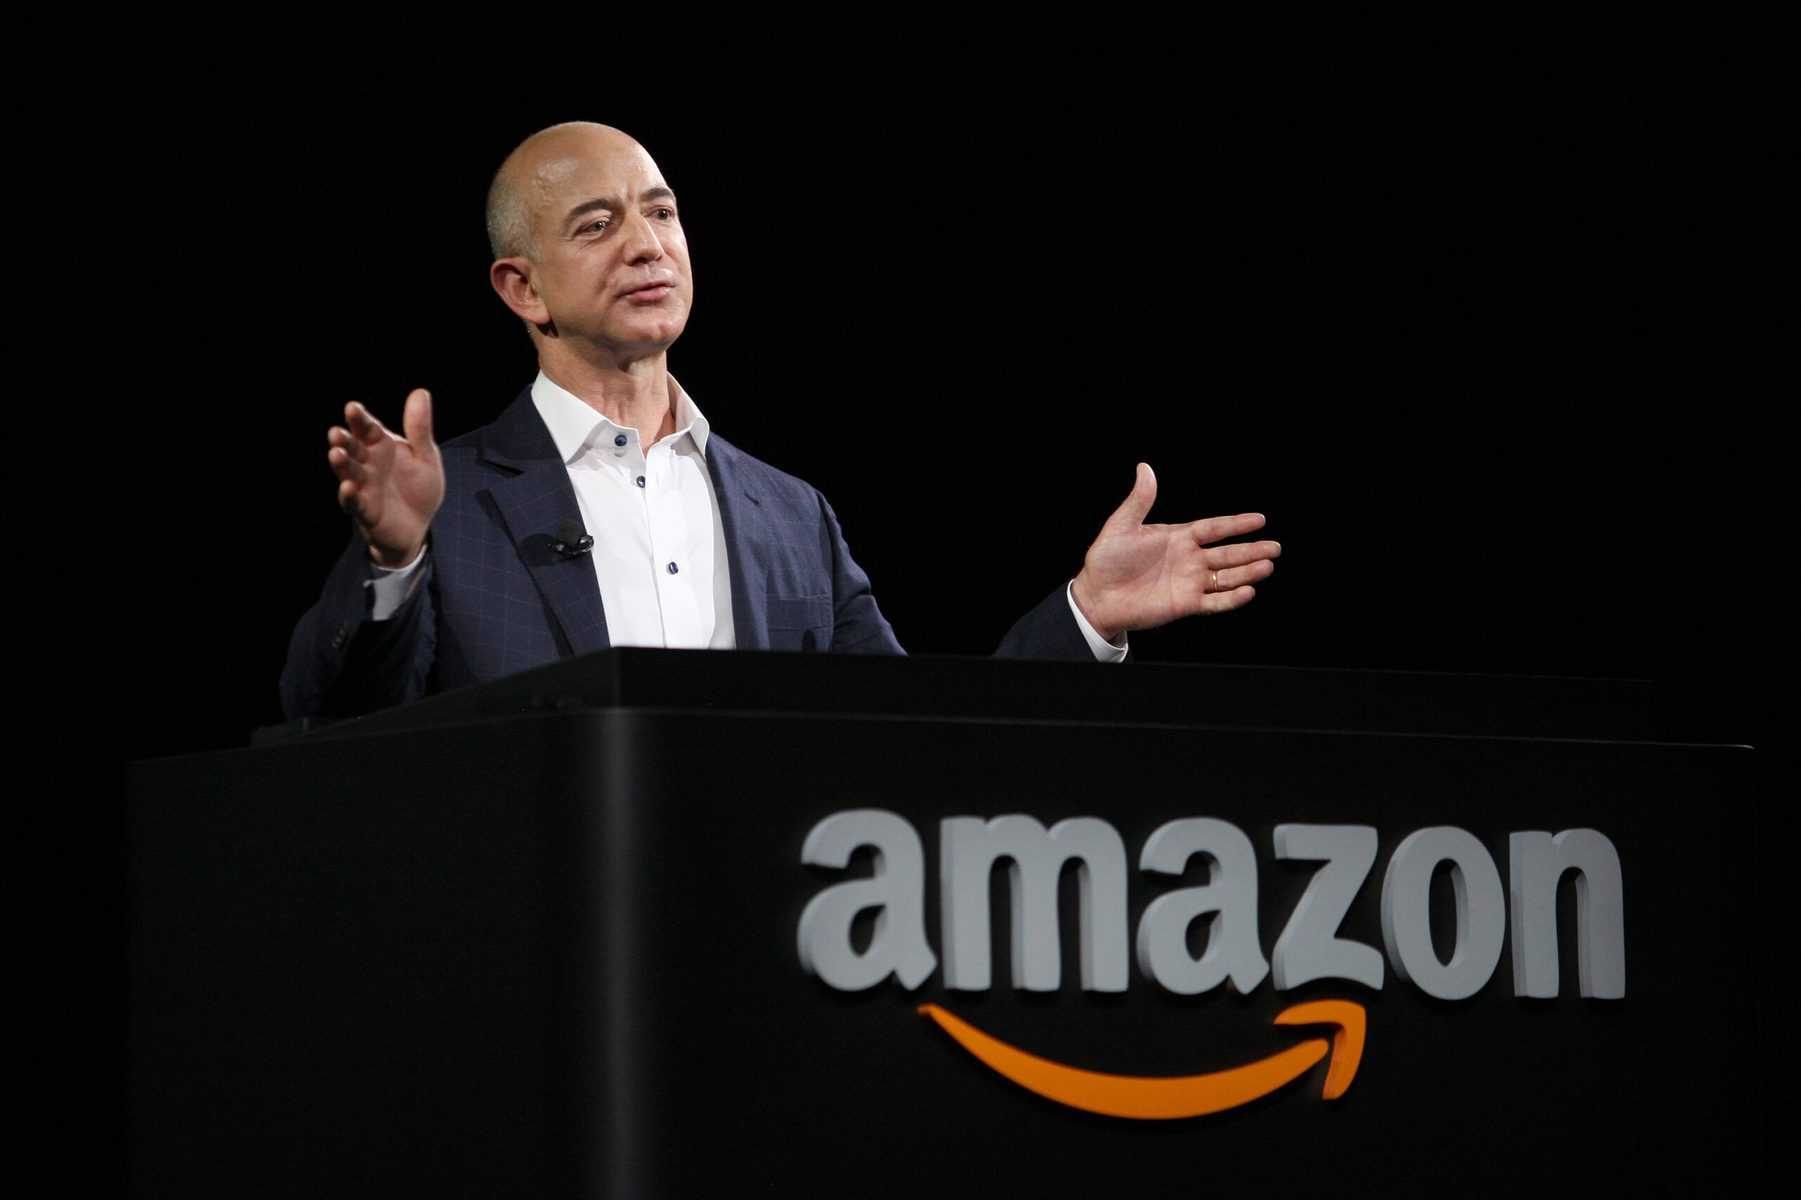 Future of Amazon after Jeff Bezos steps down as CEO